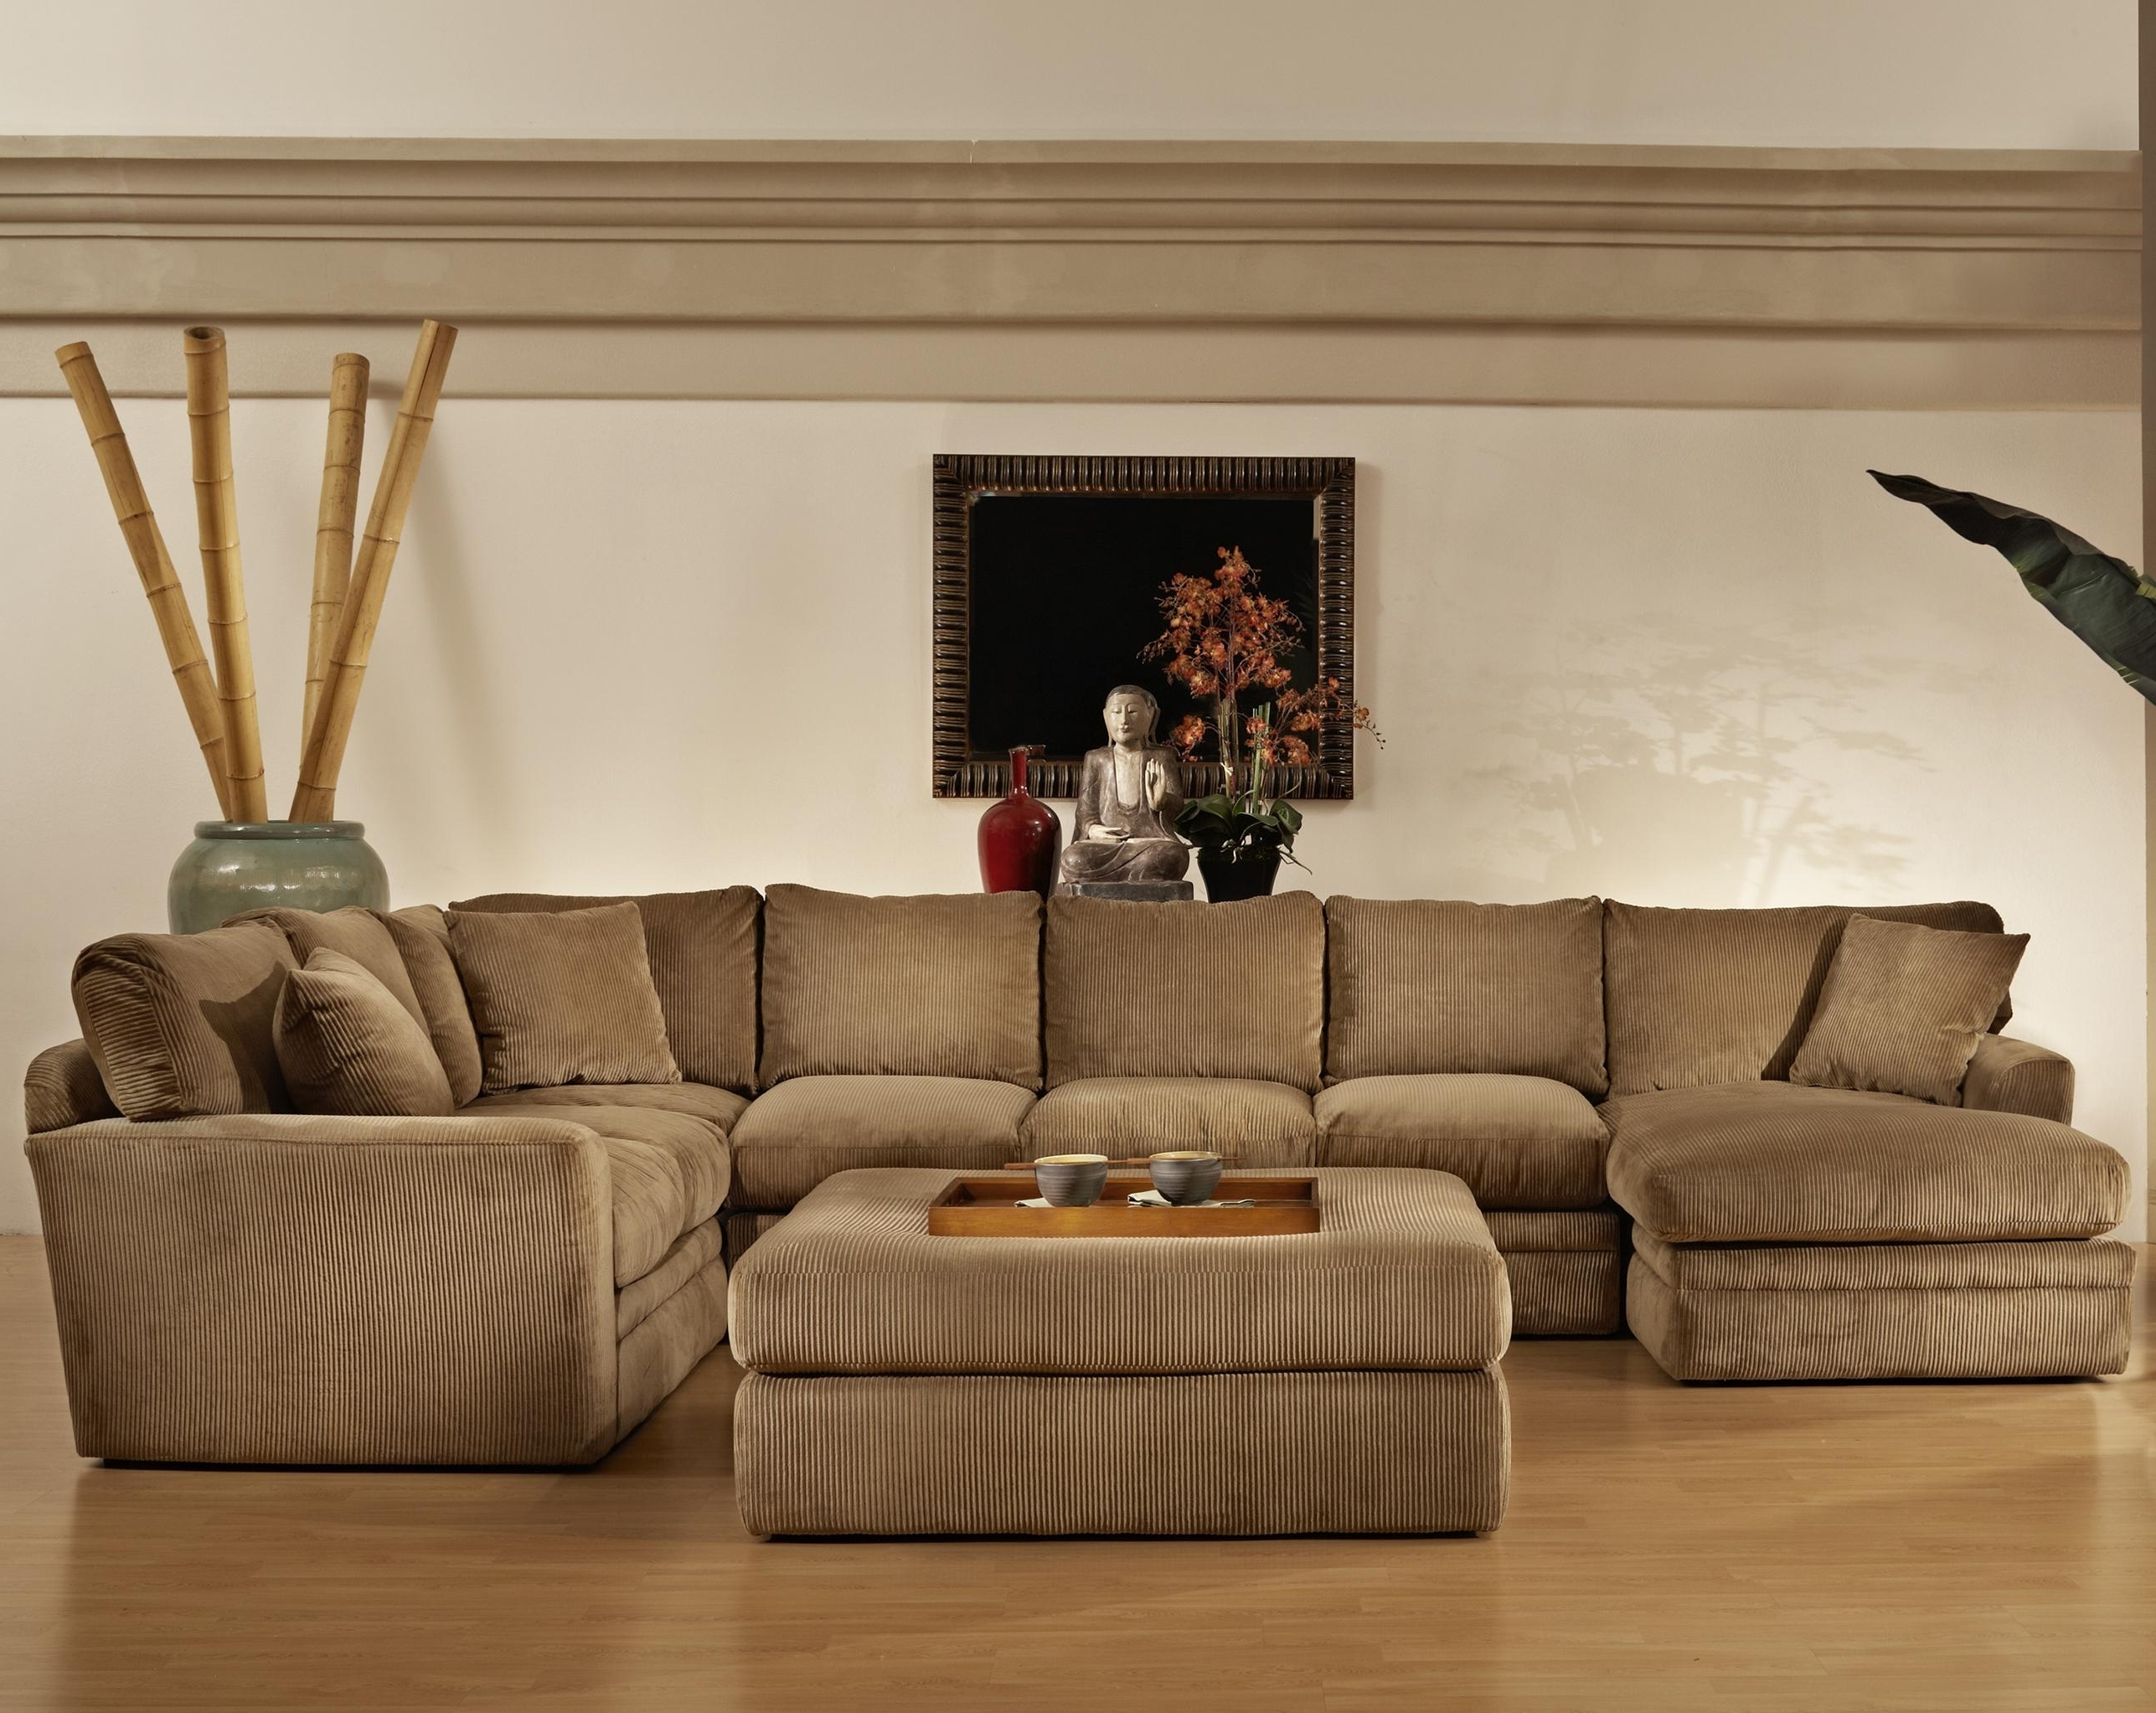 Current Extra Large Sectional Sofa With Chaise And Ottoman U Shaped In Throughout Extra Large Sectional Sofas With Chaise (View 12 of 15)